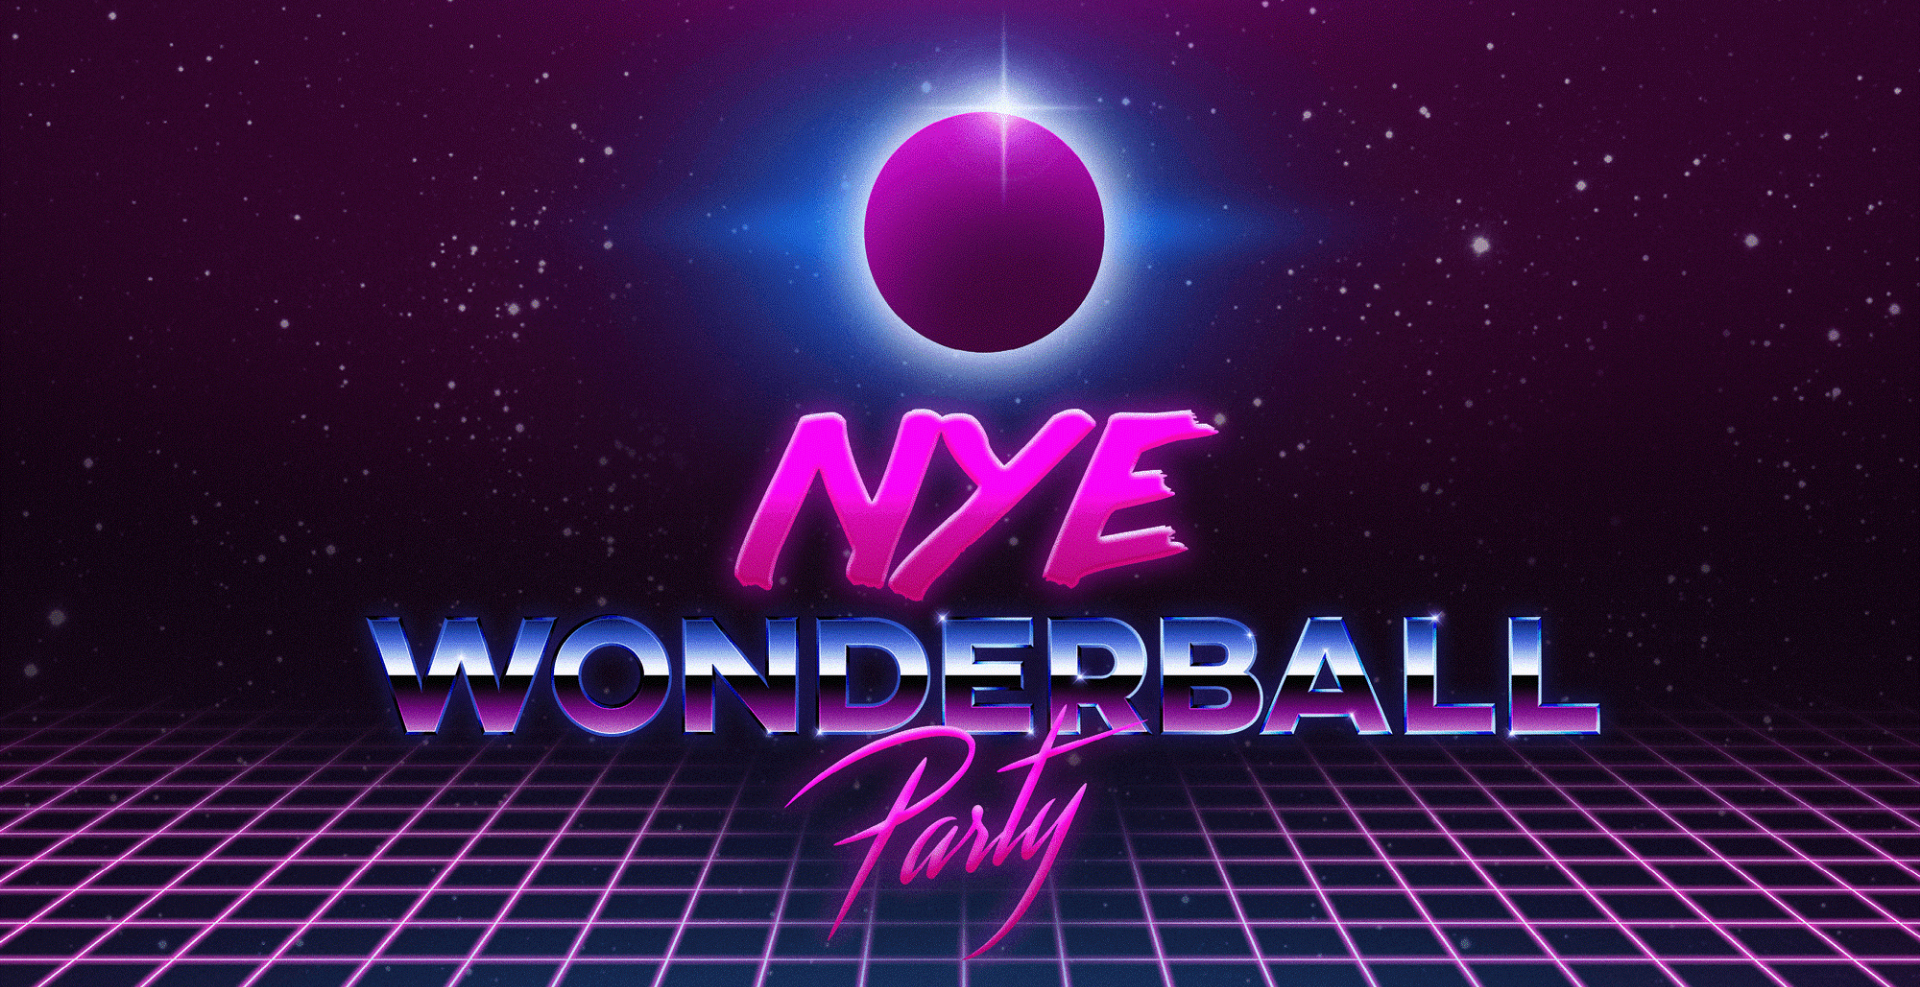 NYE Wonderball Party